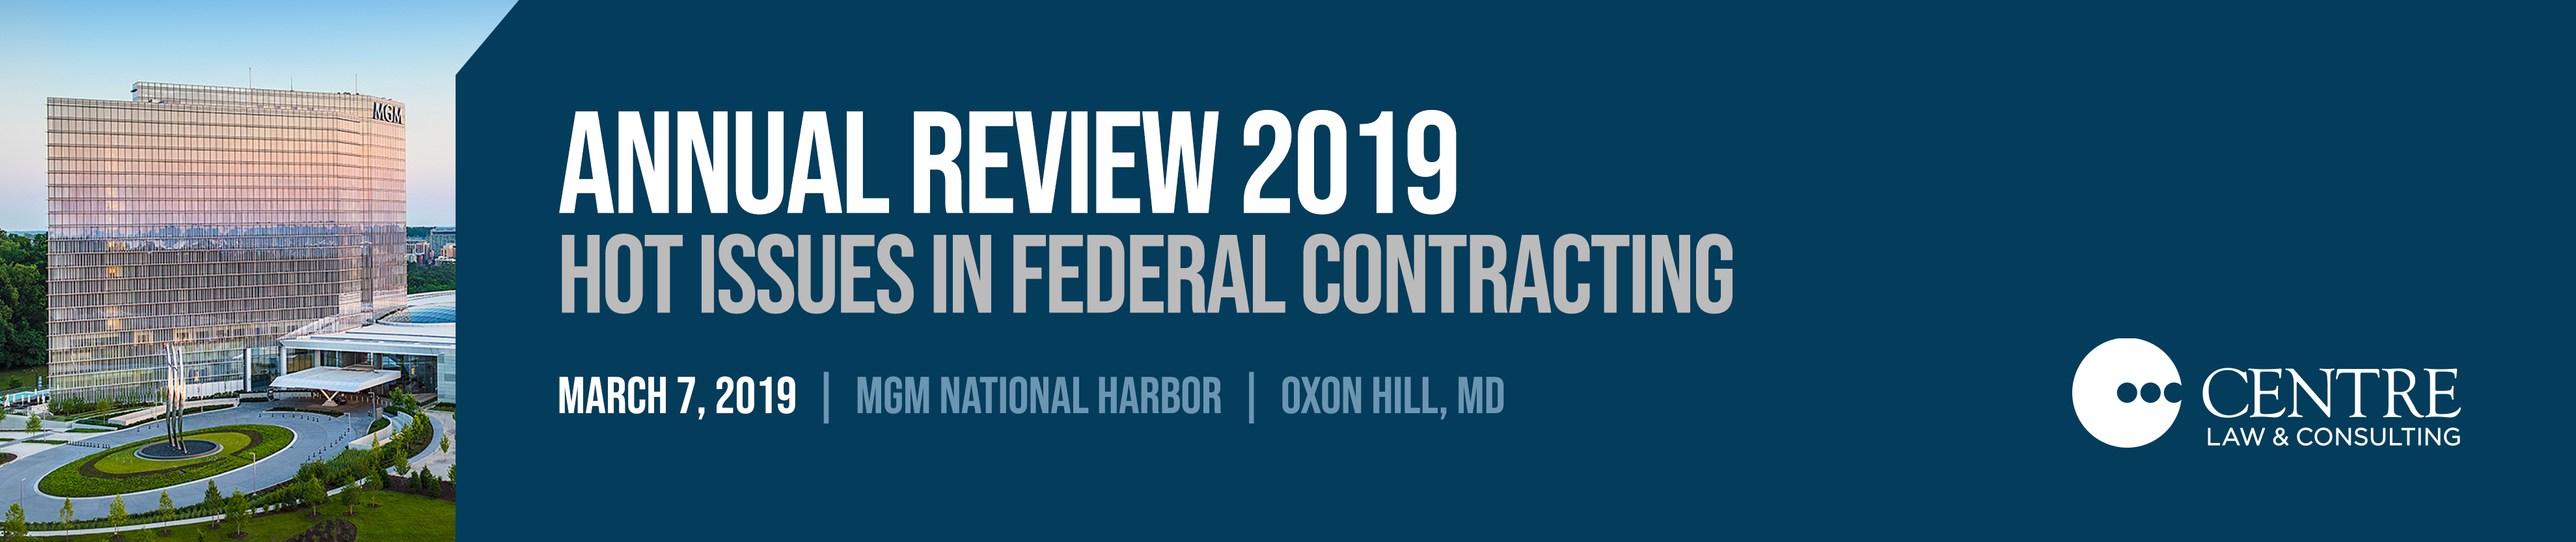 Annual Review 2019: Hot Issues in Federal Contracting